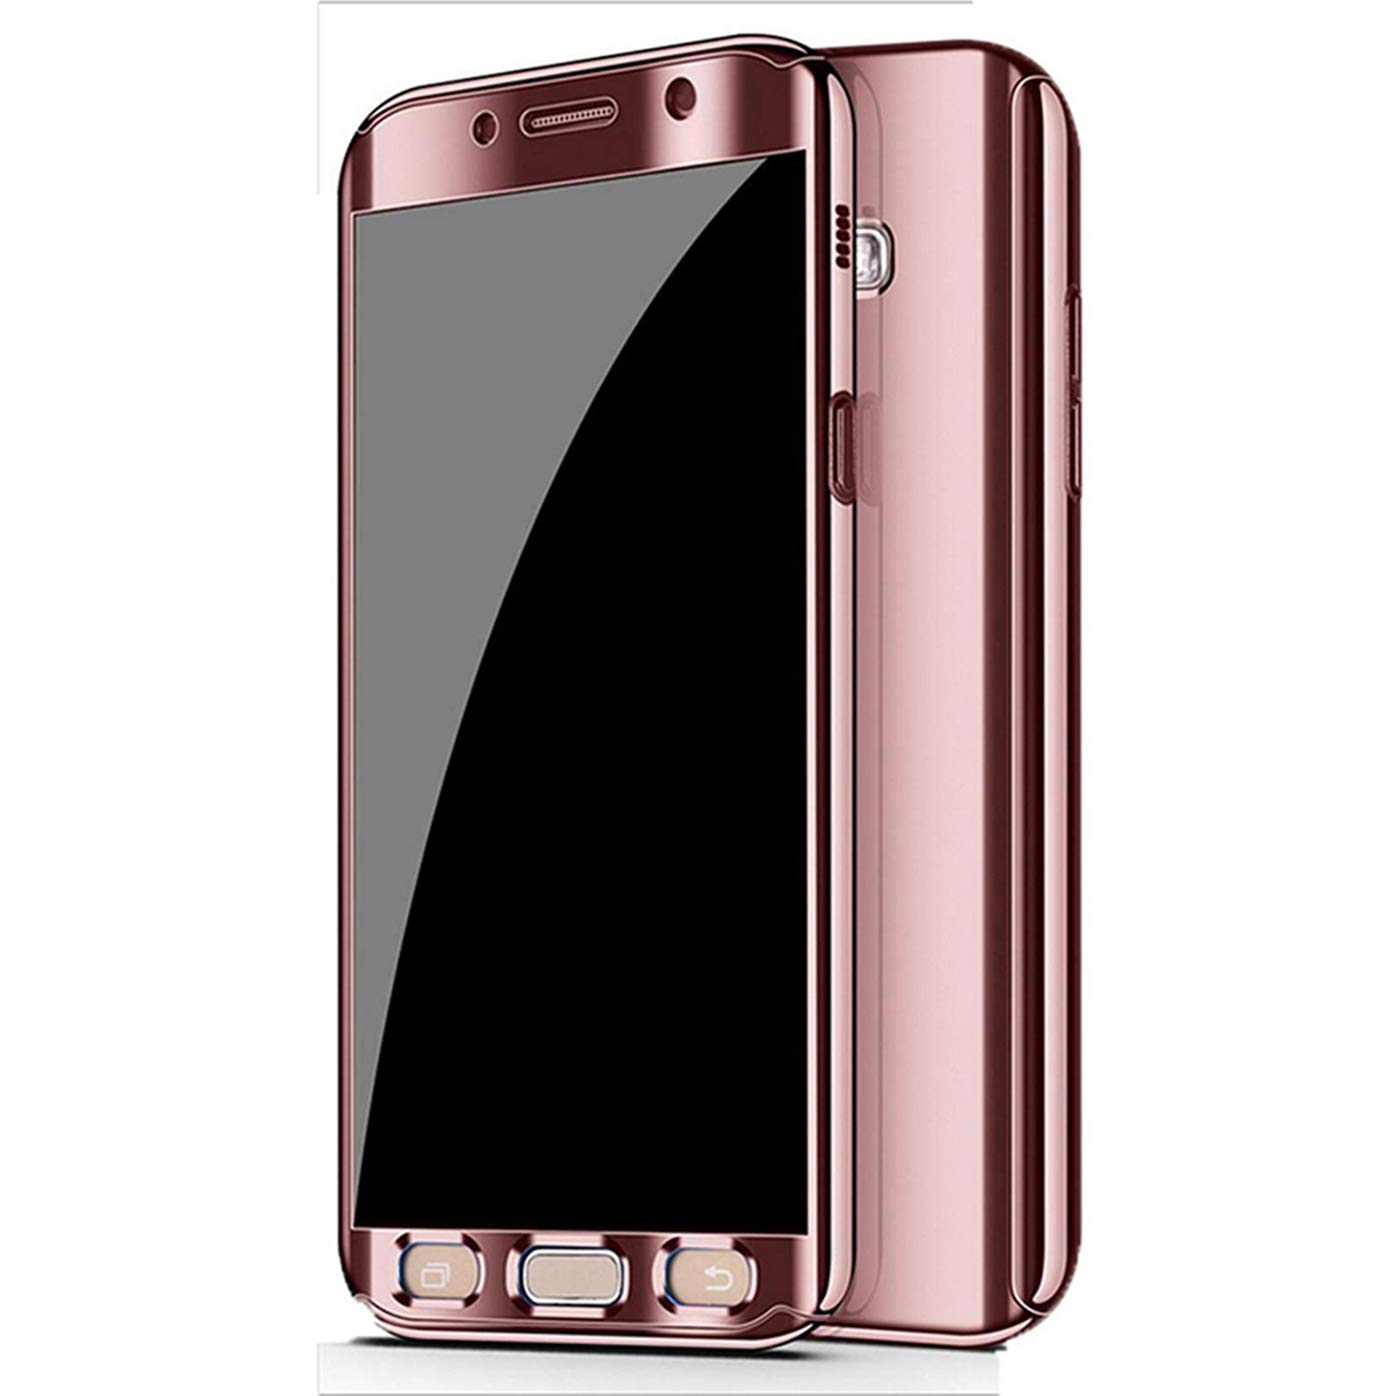 Galaxy S7 Edge Case, Ultra Slim Electroplate 360 Degree Full Body Protection Mirror Case with Tempered Glass Screen for Galaxy S7 Edge (Rose Gold) by BXKM